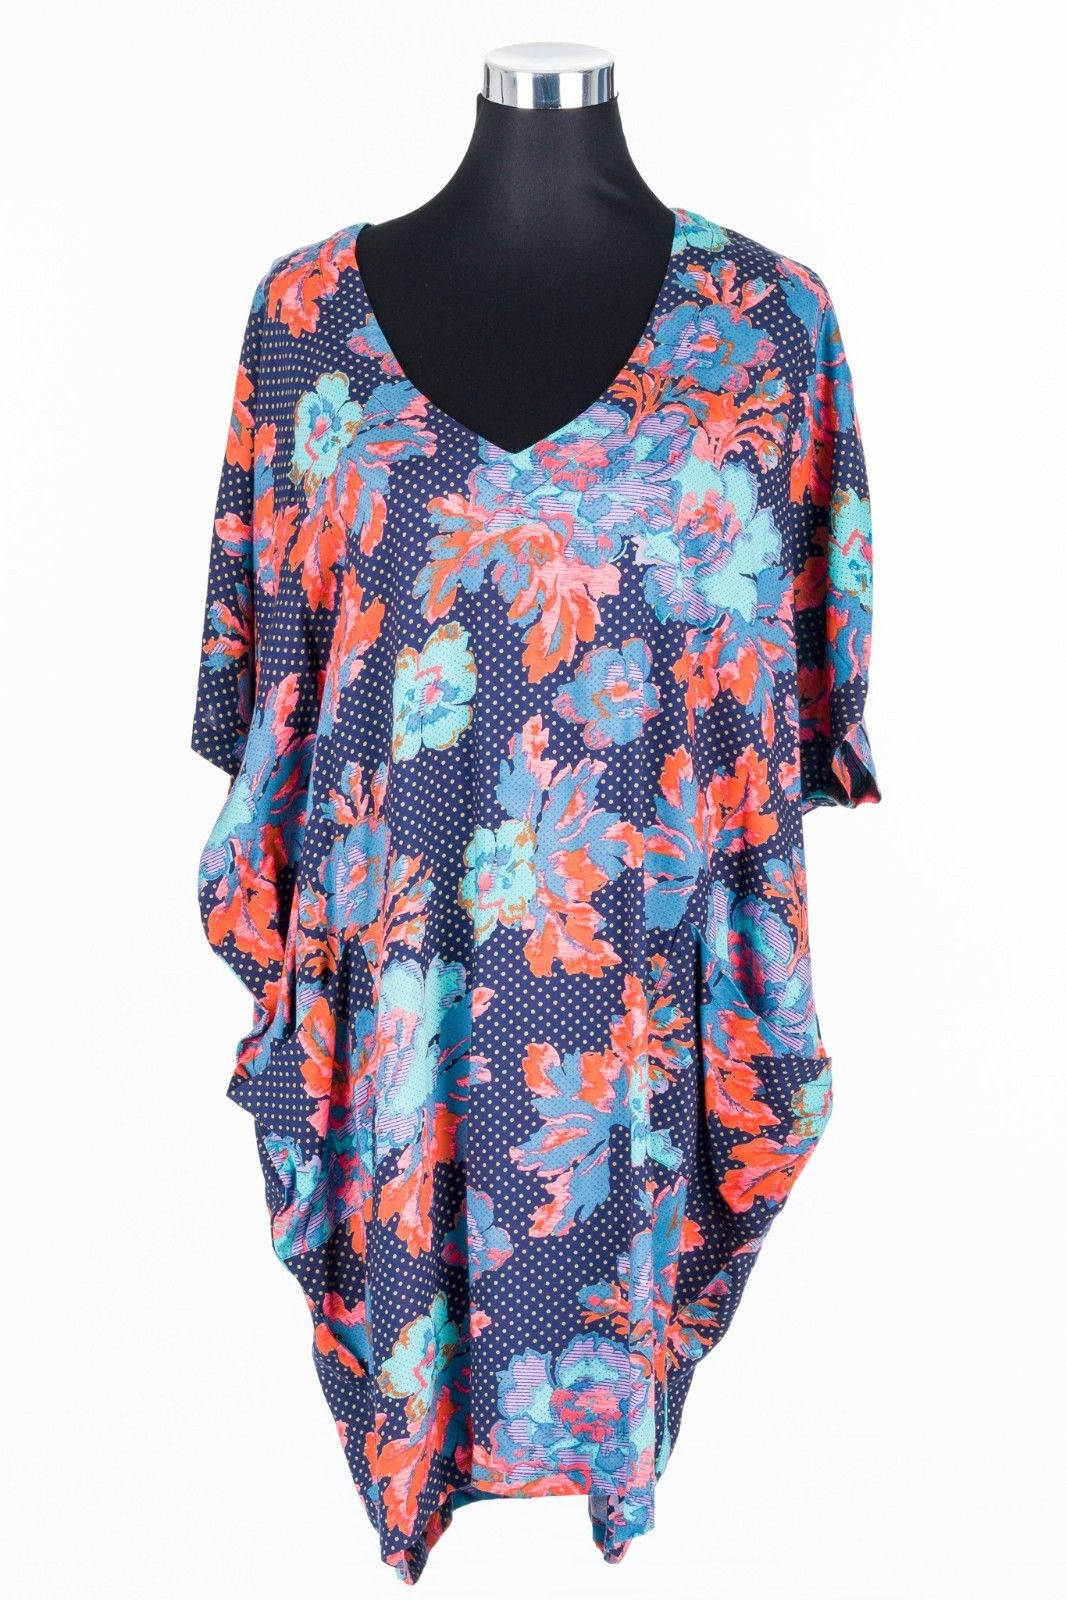 WOMEN-VINTAGE-FLORAL-LOOSE-DRESS-BATWING-SLEEVE-V-NECK-LADIES-CASUAL-RETRO-382057511612